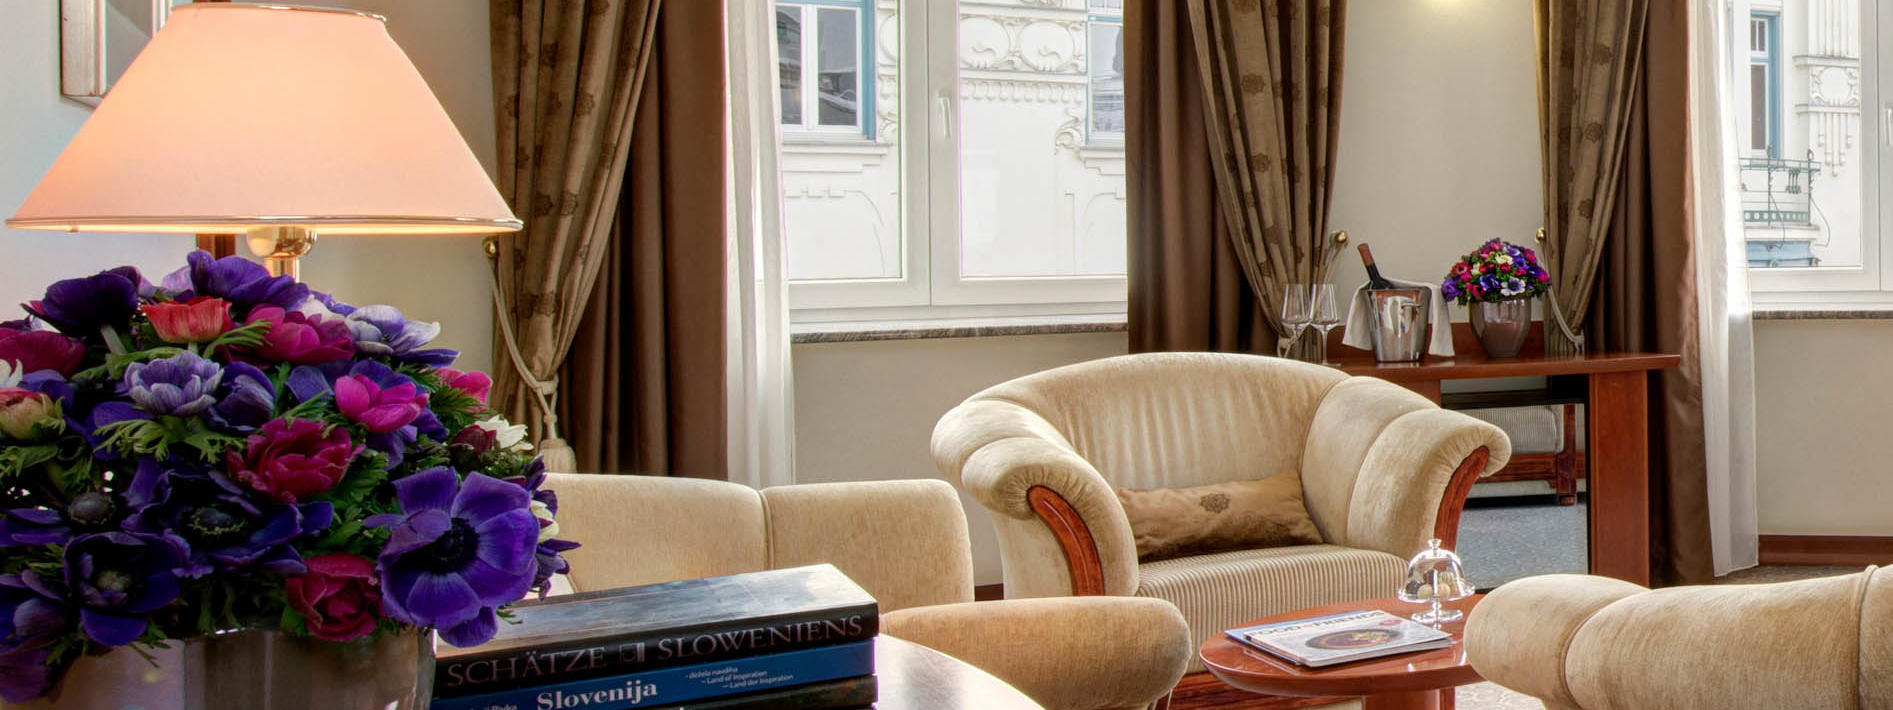 Royal Suite Room at Grand Hotel Union in Ljubljana